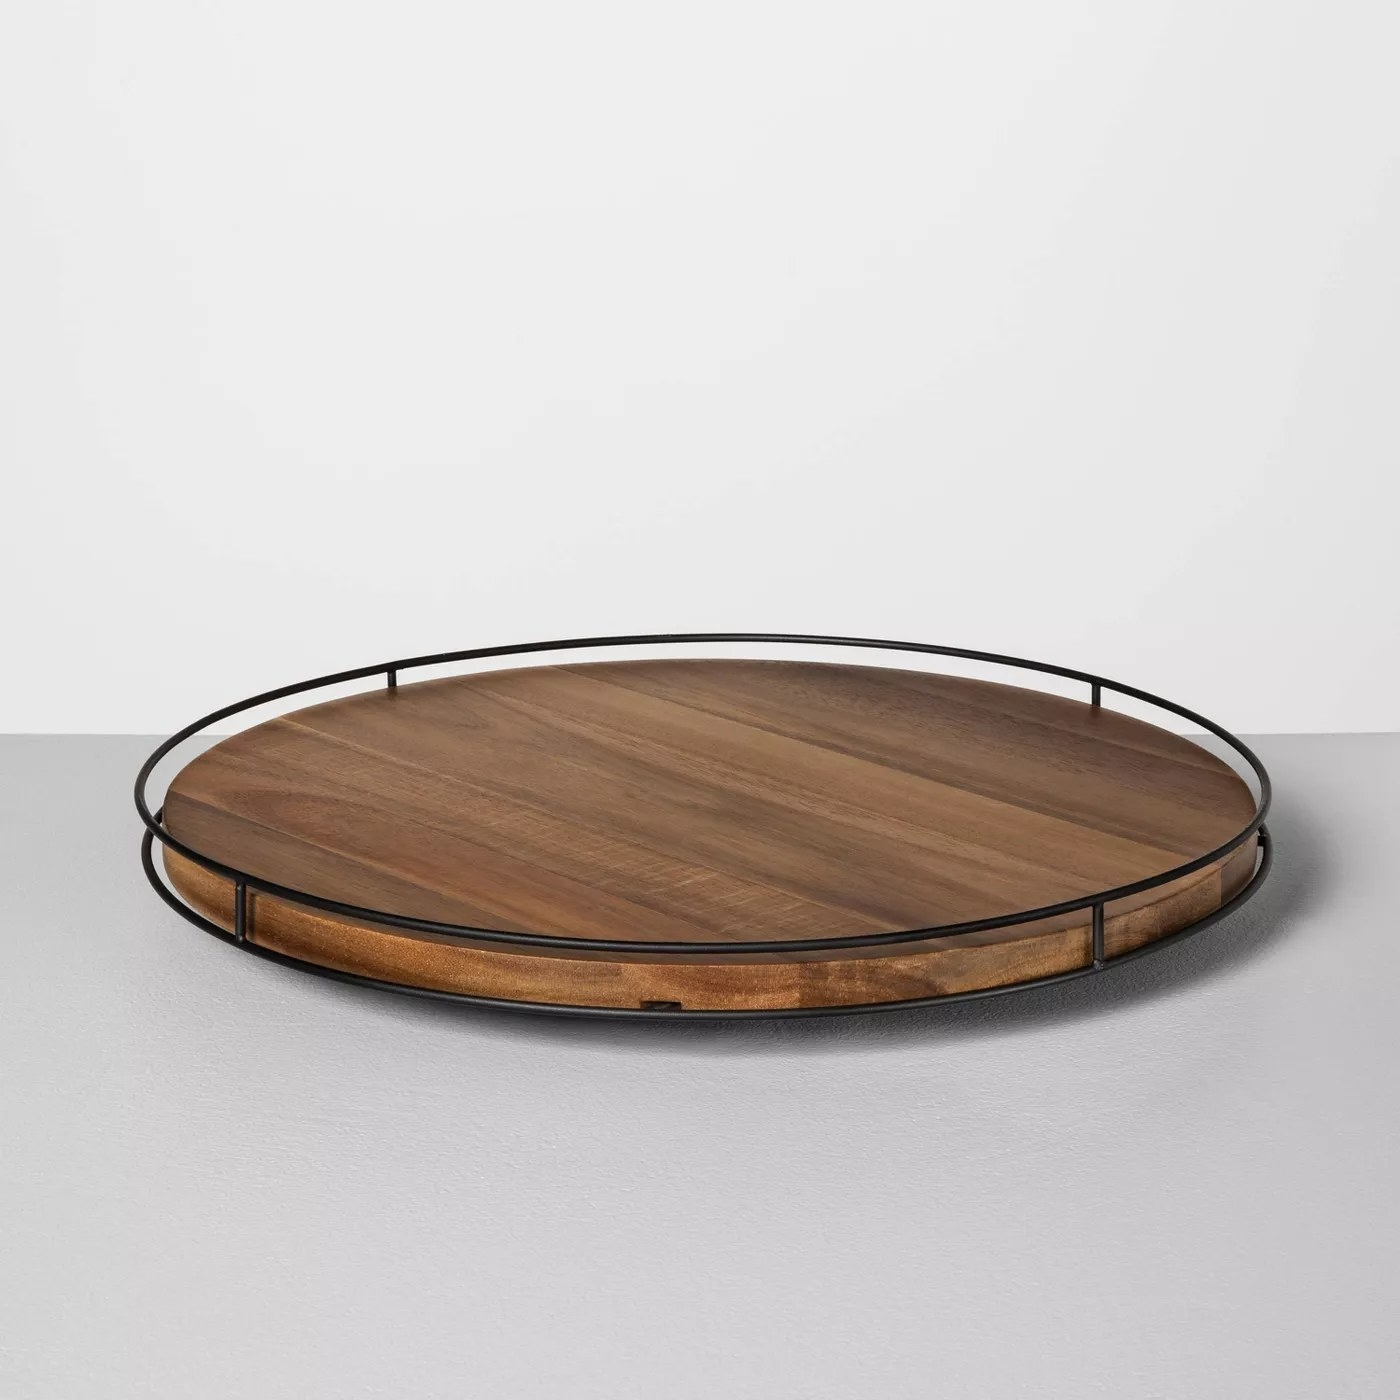 The wood and metal Lazy Susan